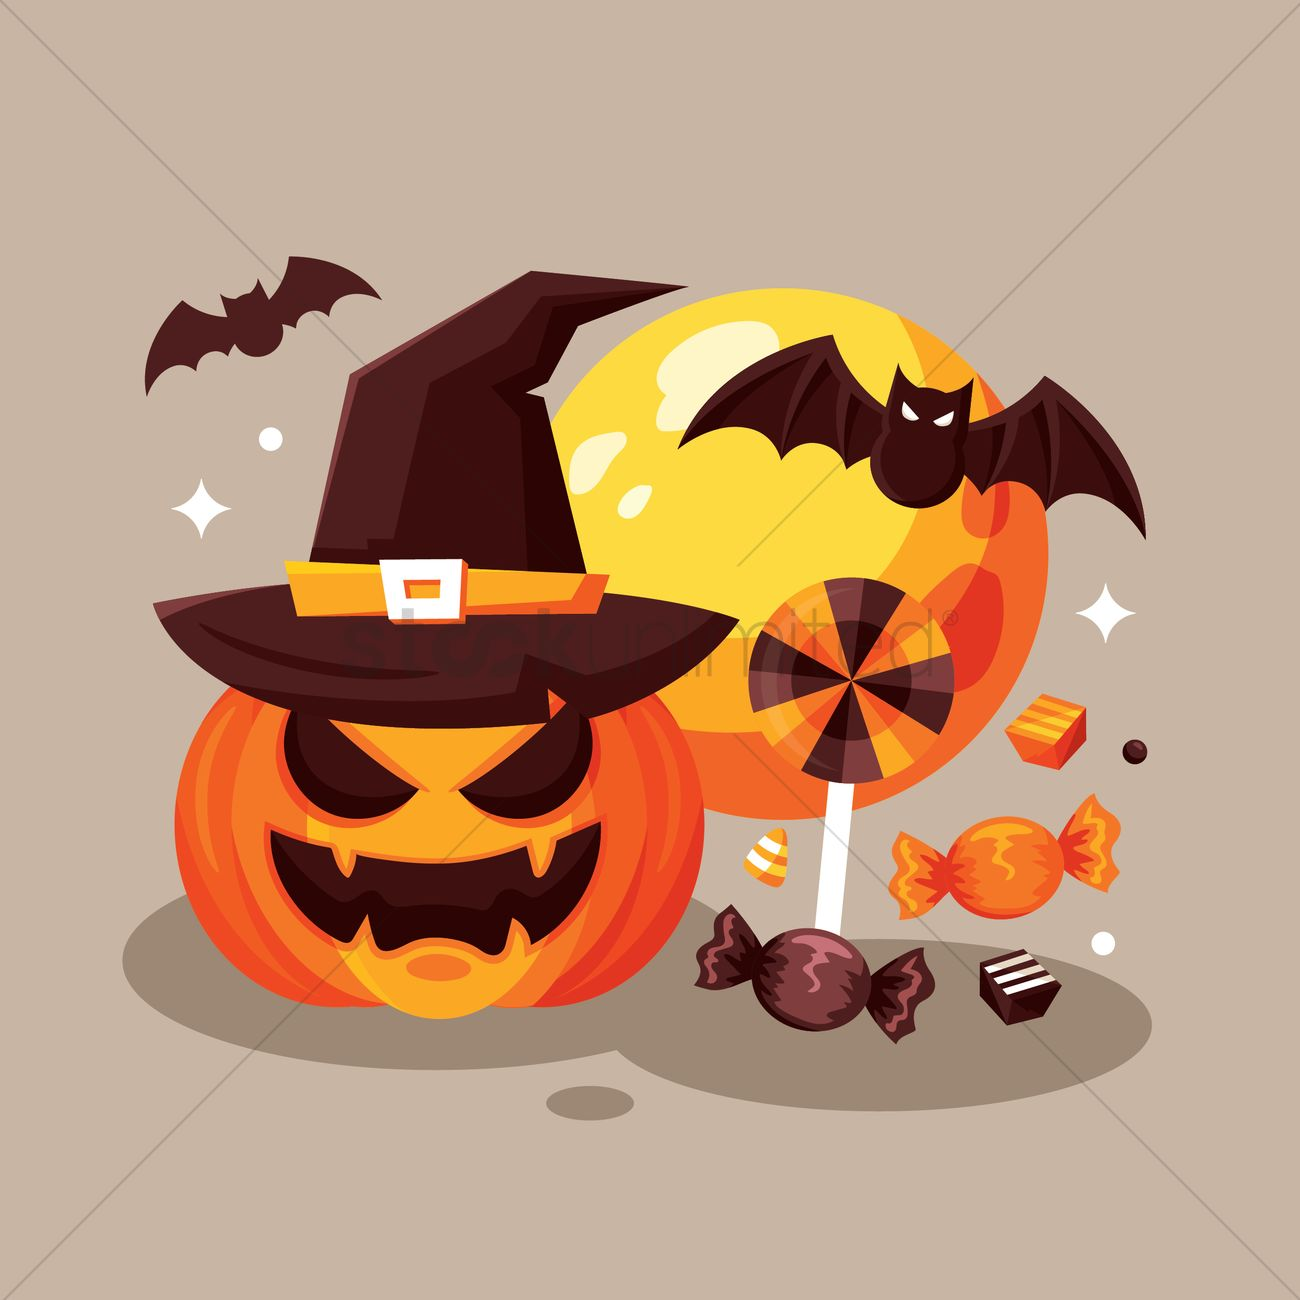 halloween design vector graphic - Halloween Design